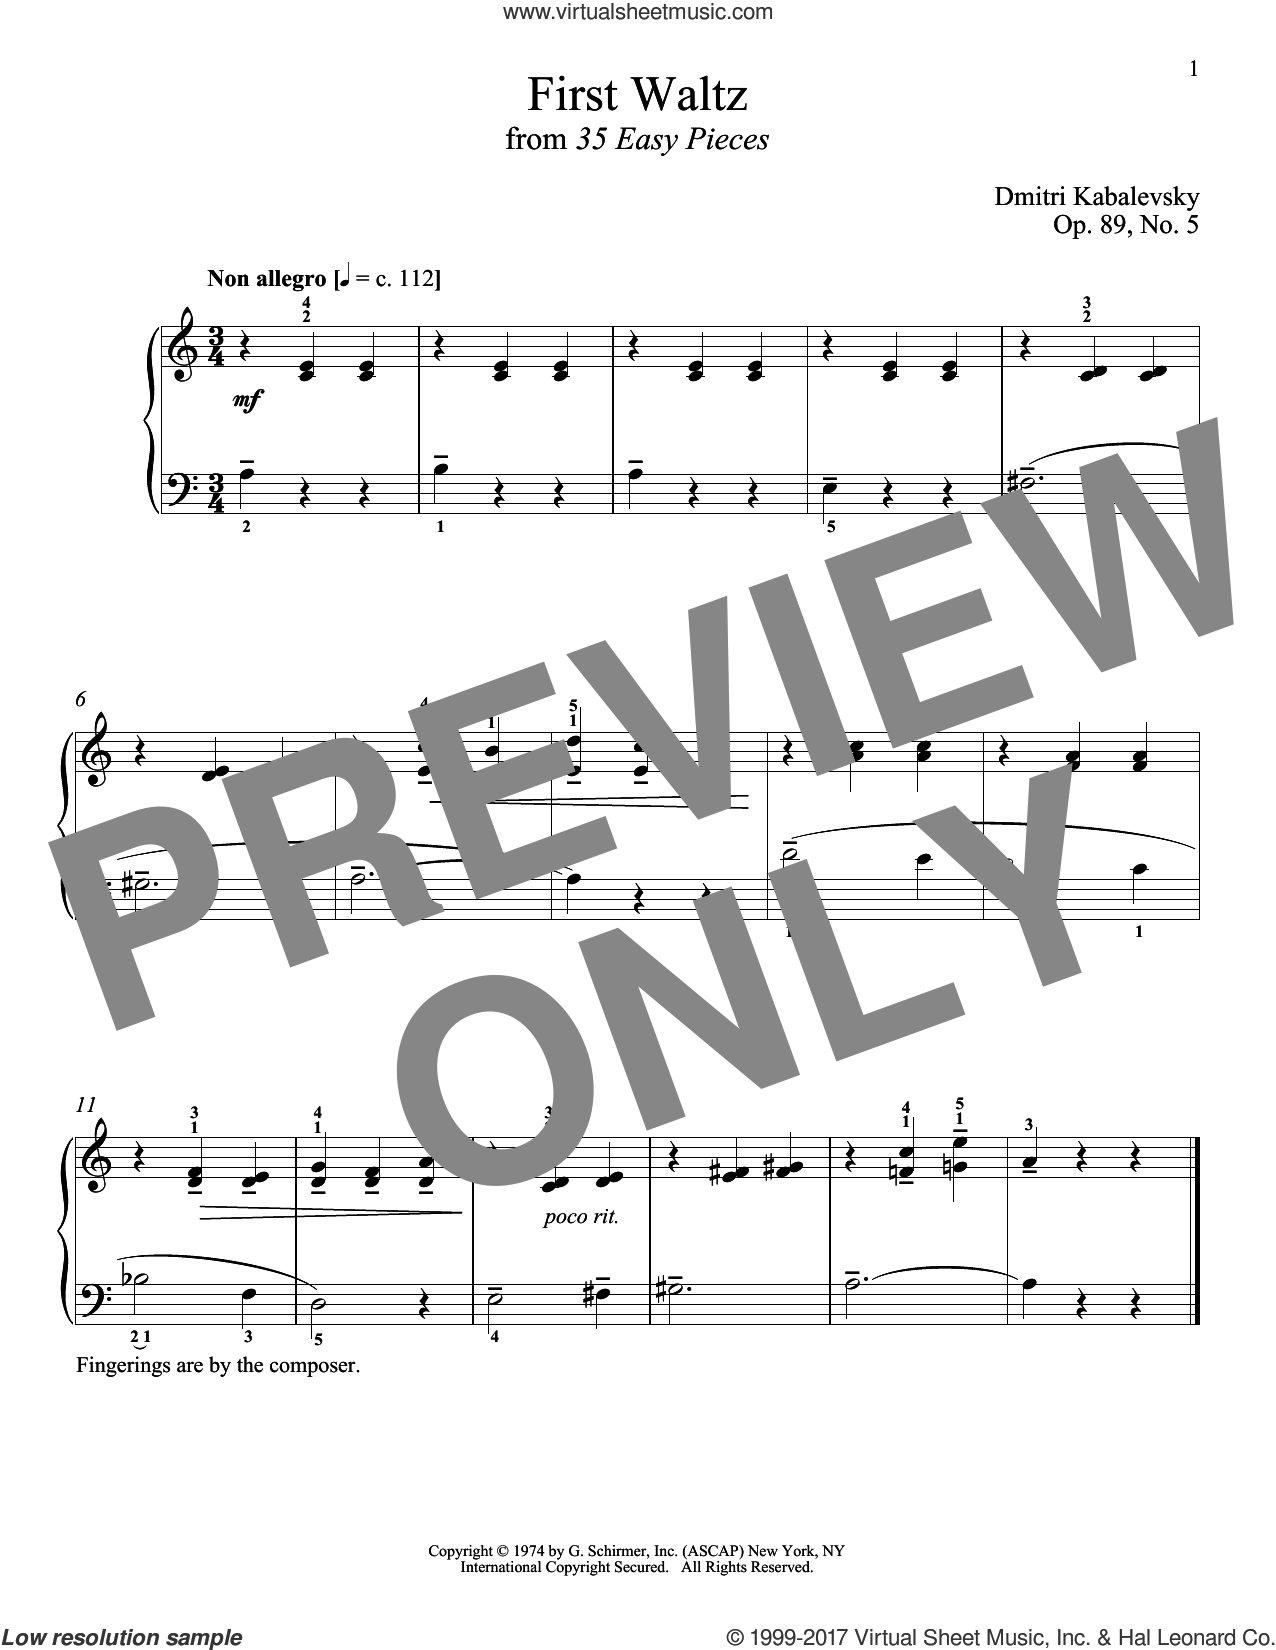 First Waltz sheet music for piano solo by Dmitri Kabalevsky and Richard Walters, classical score, intermediate skill level